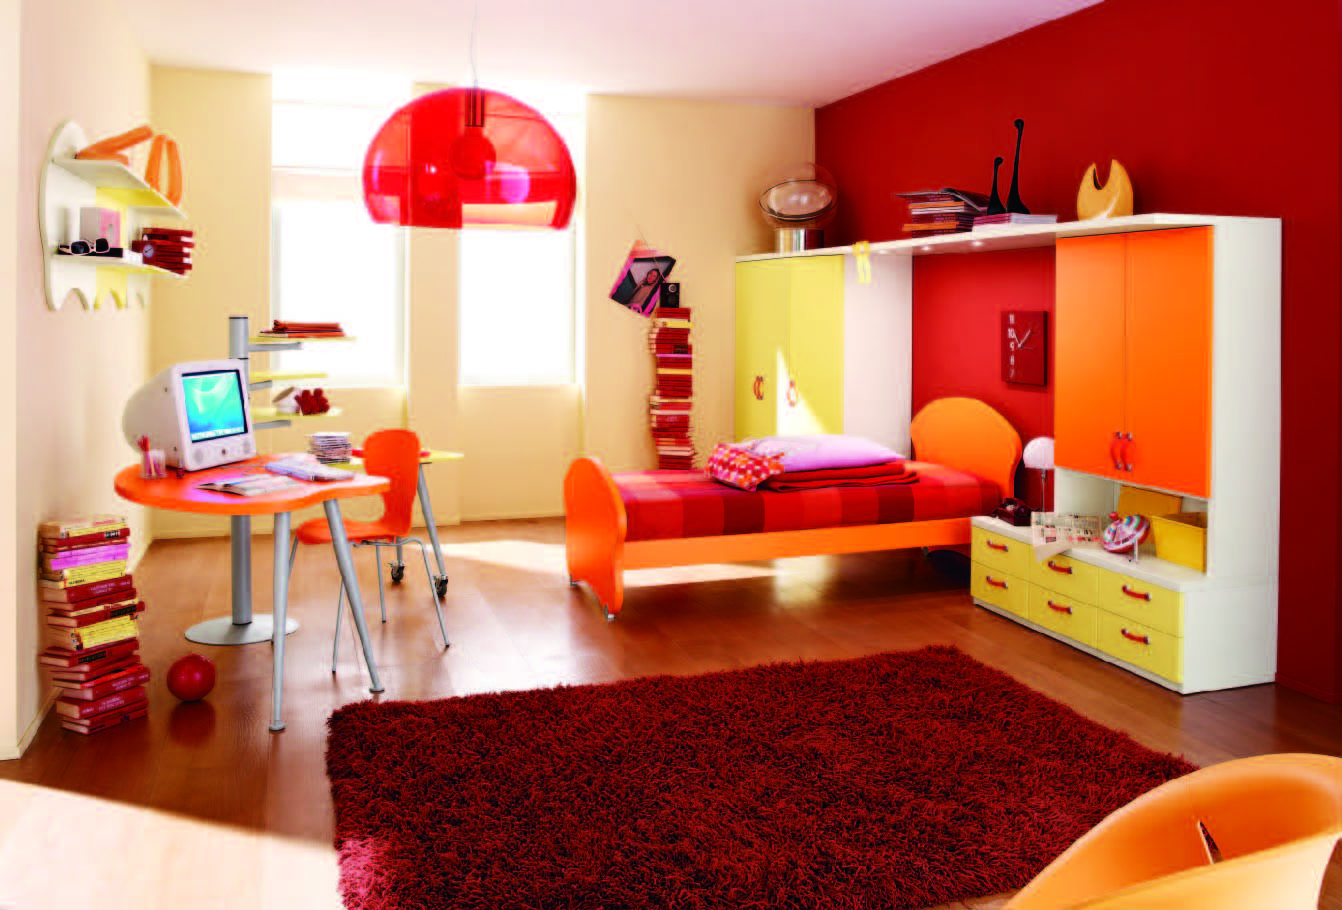 Living Room Colorful Room Decor 1000 images about room ideas on pinterest beautiful bedrooms teenage girl and bedrooms